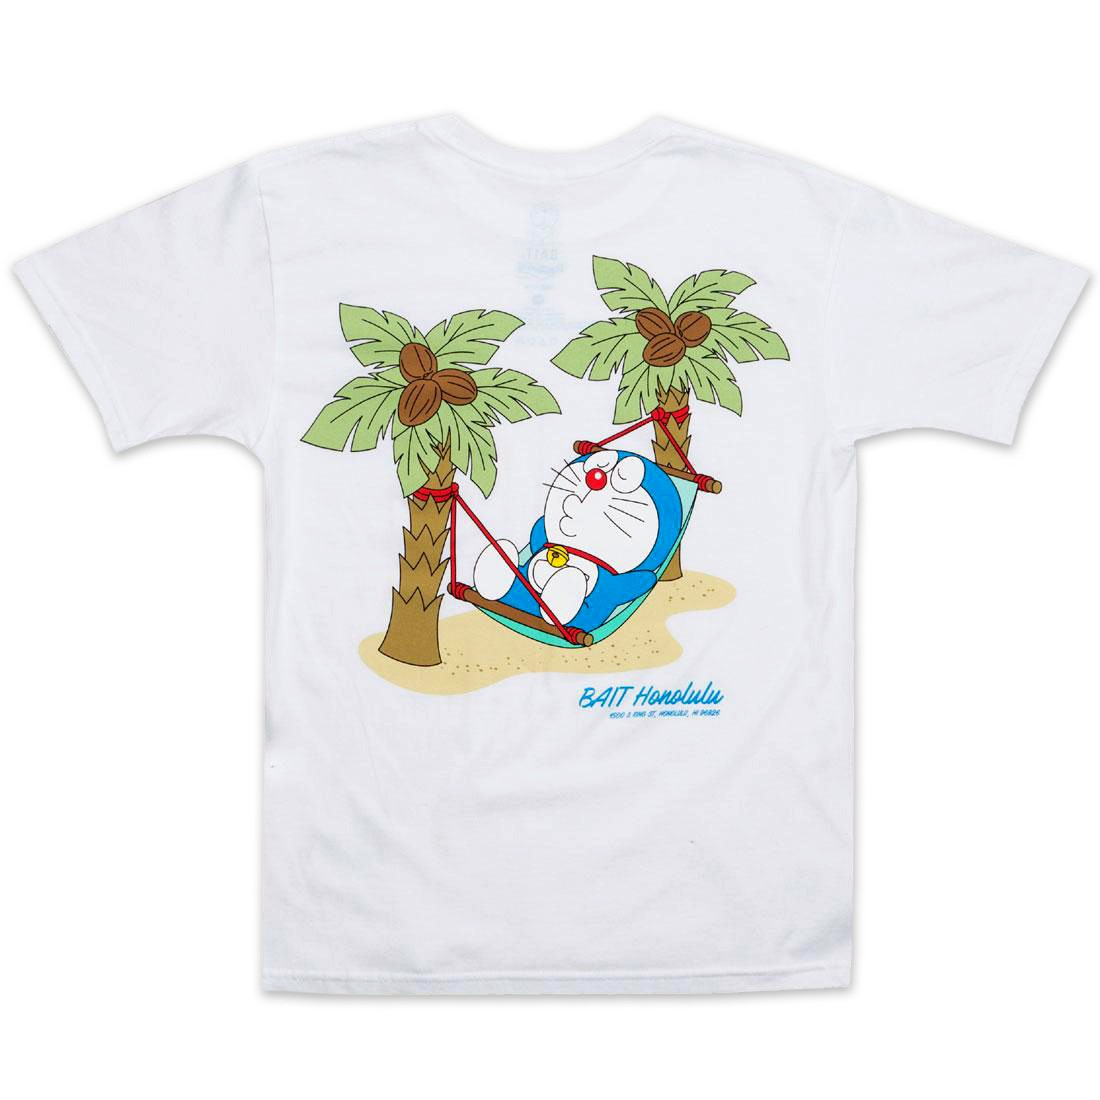 BAIT x Doraemon Youth Honululu Tee (white)